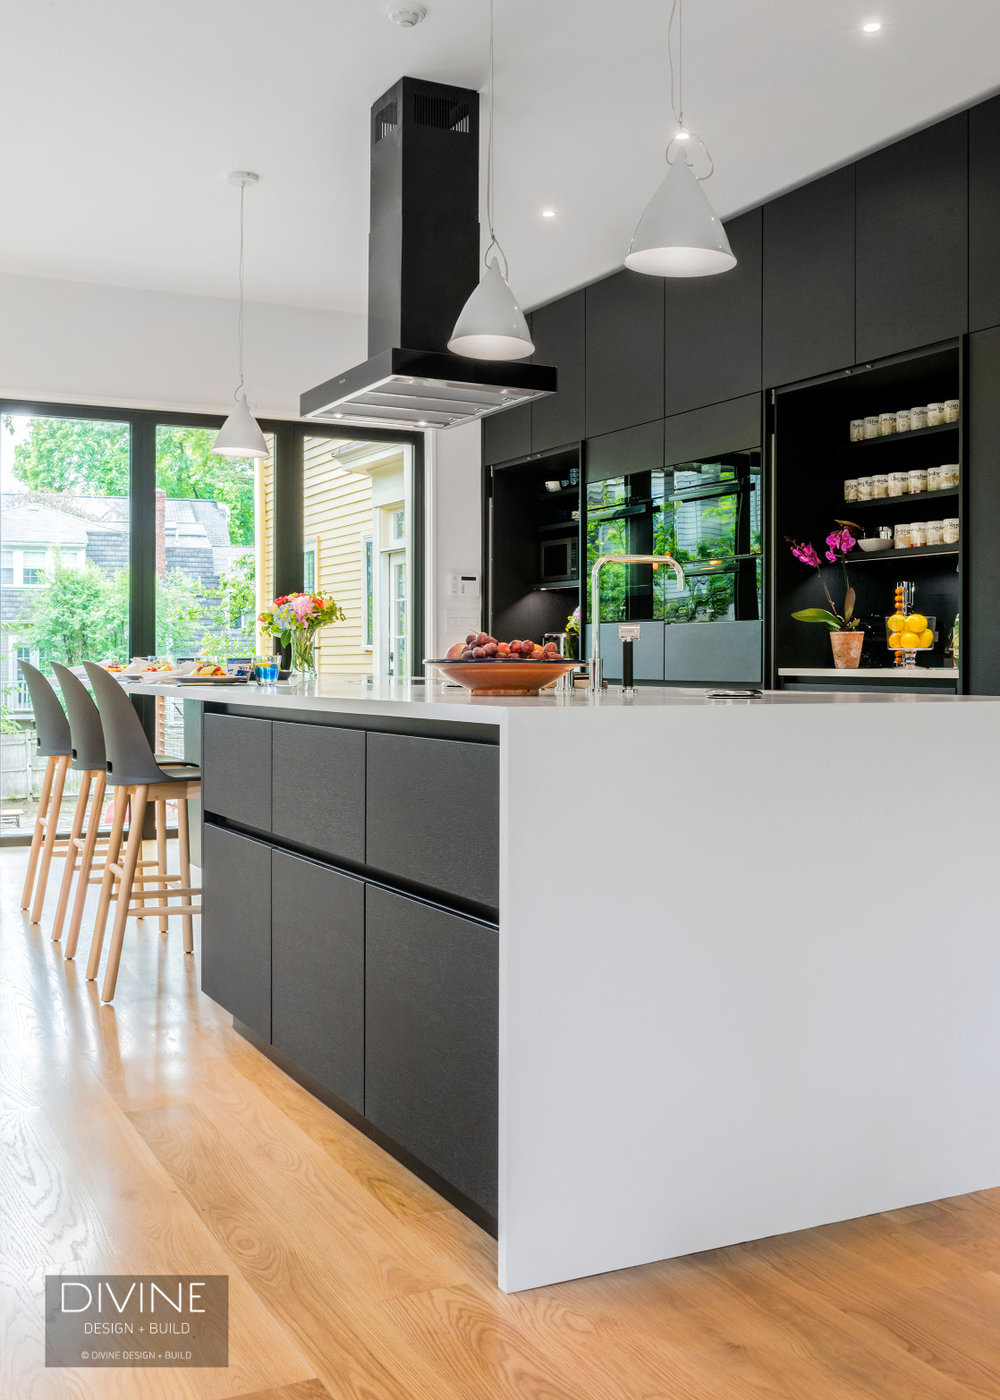 Modern black Leicht kitchen with granite countertops and wolf and sub zero appliances. Black range hood and induction cooktop on the island.